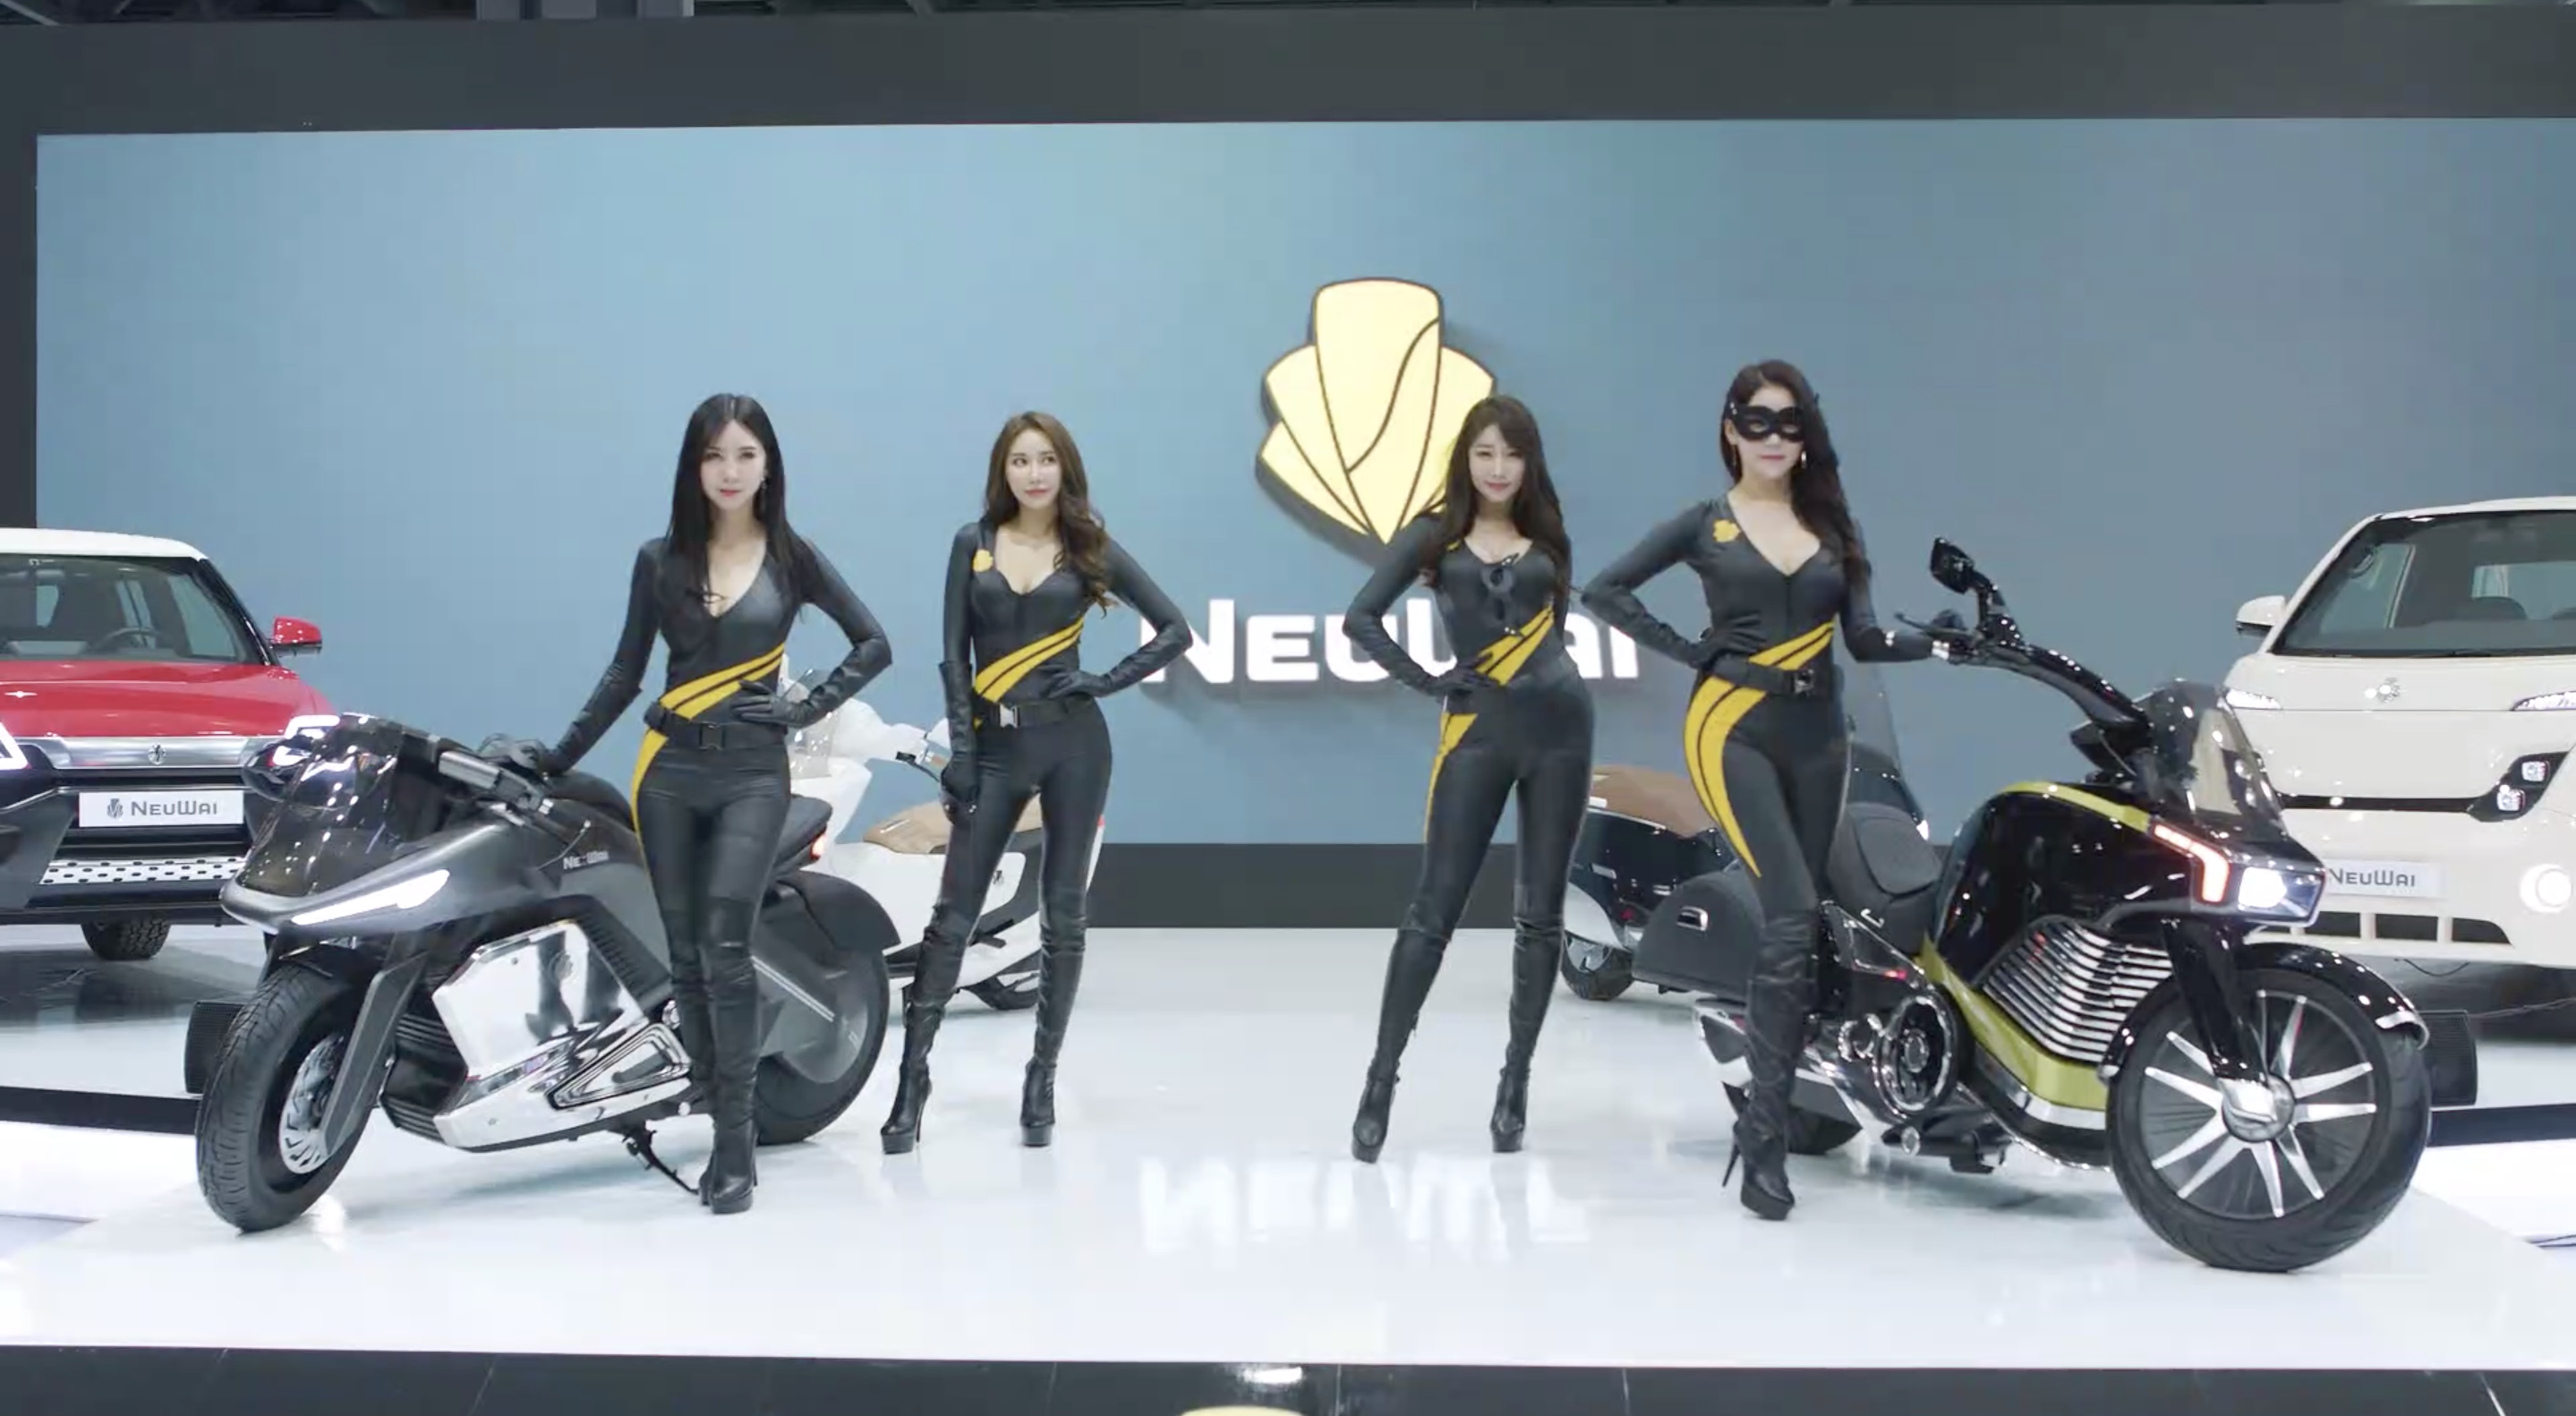 NeuWai electric motorcycles to offer sport bike and cruiser next year